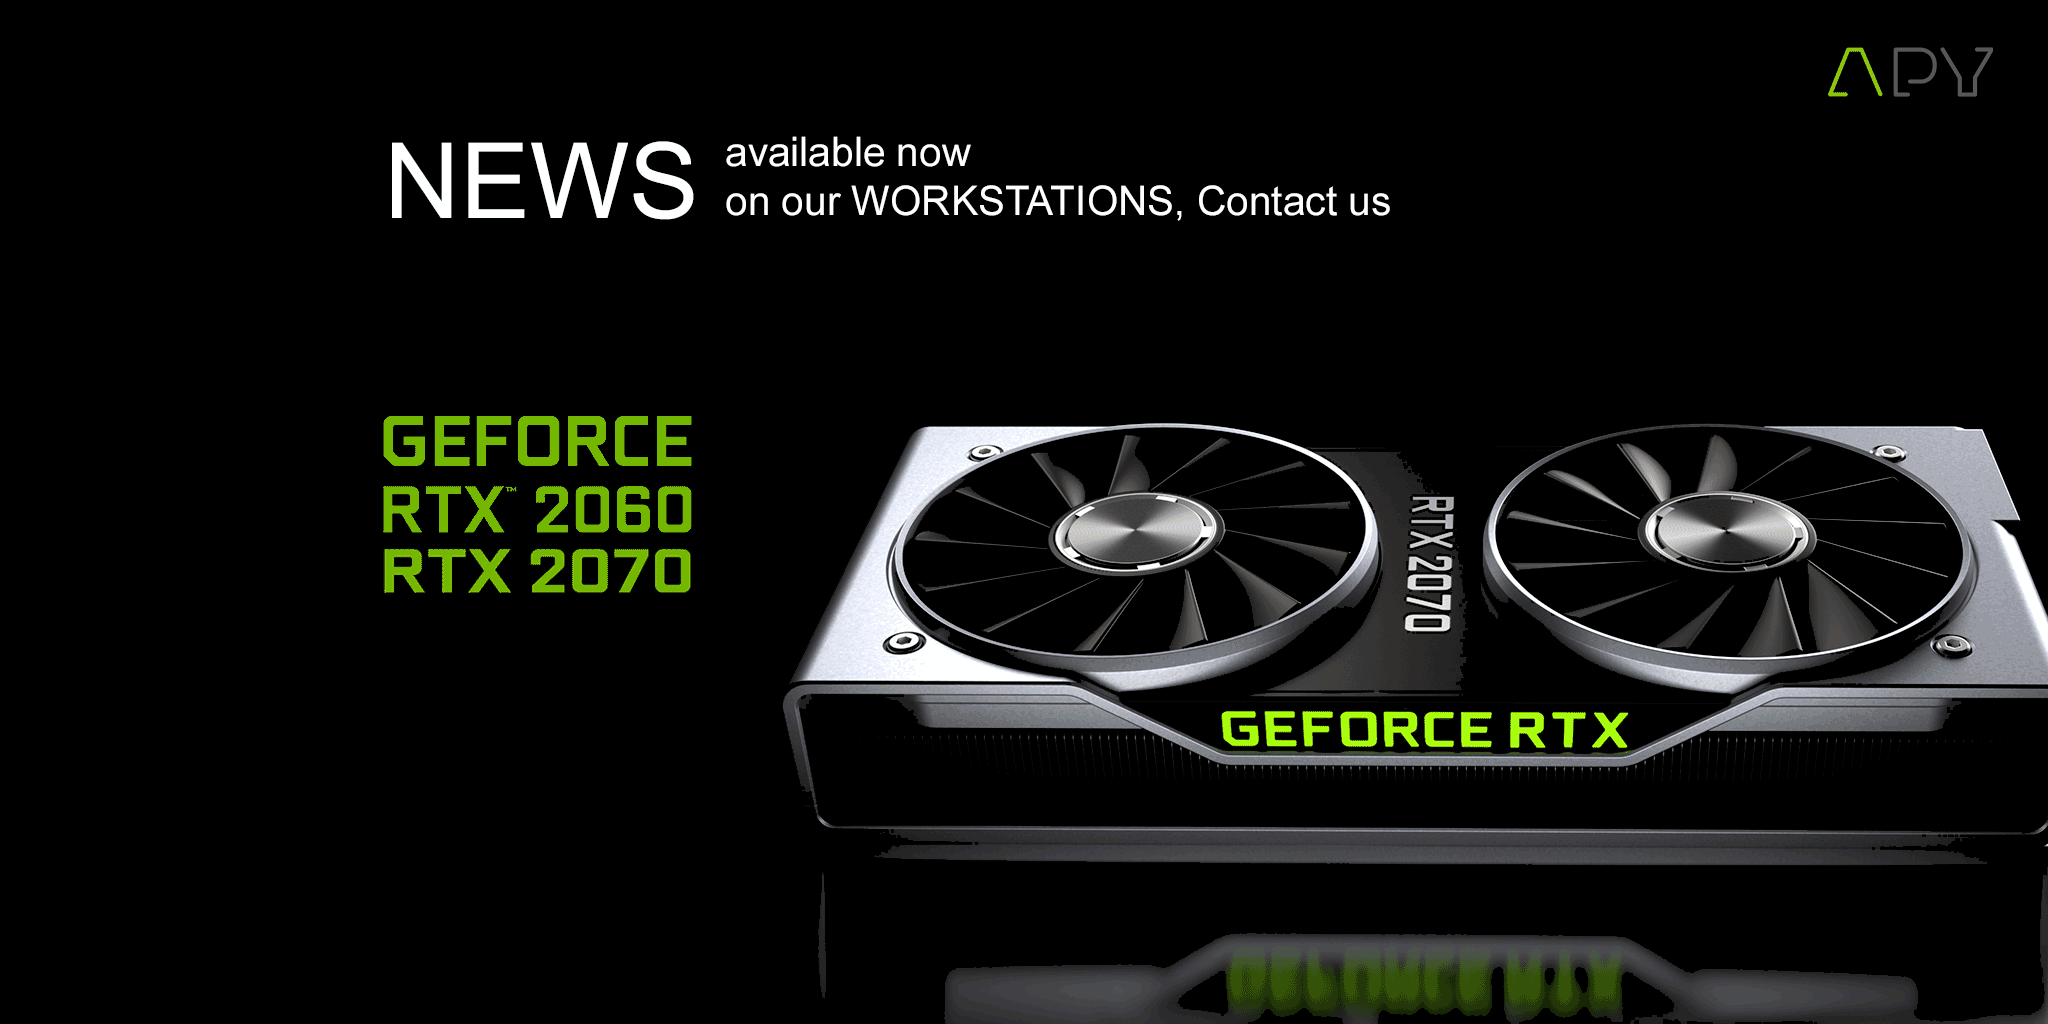 Launch rtx 2060 and 2070 nvidia